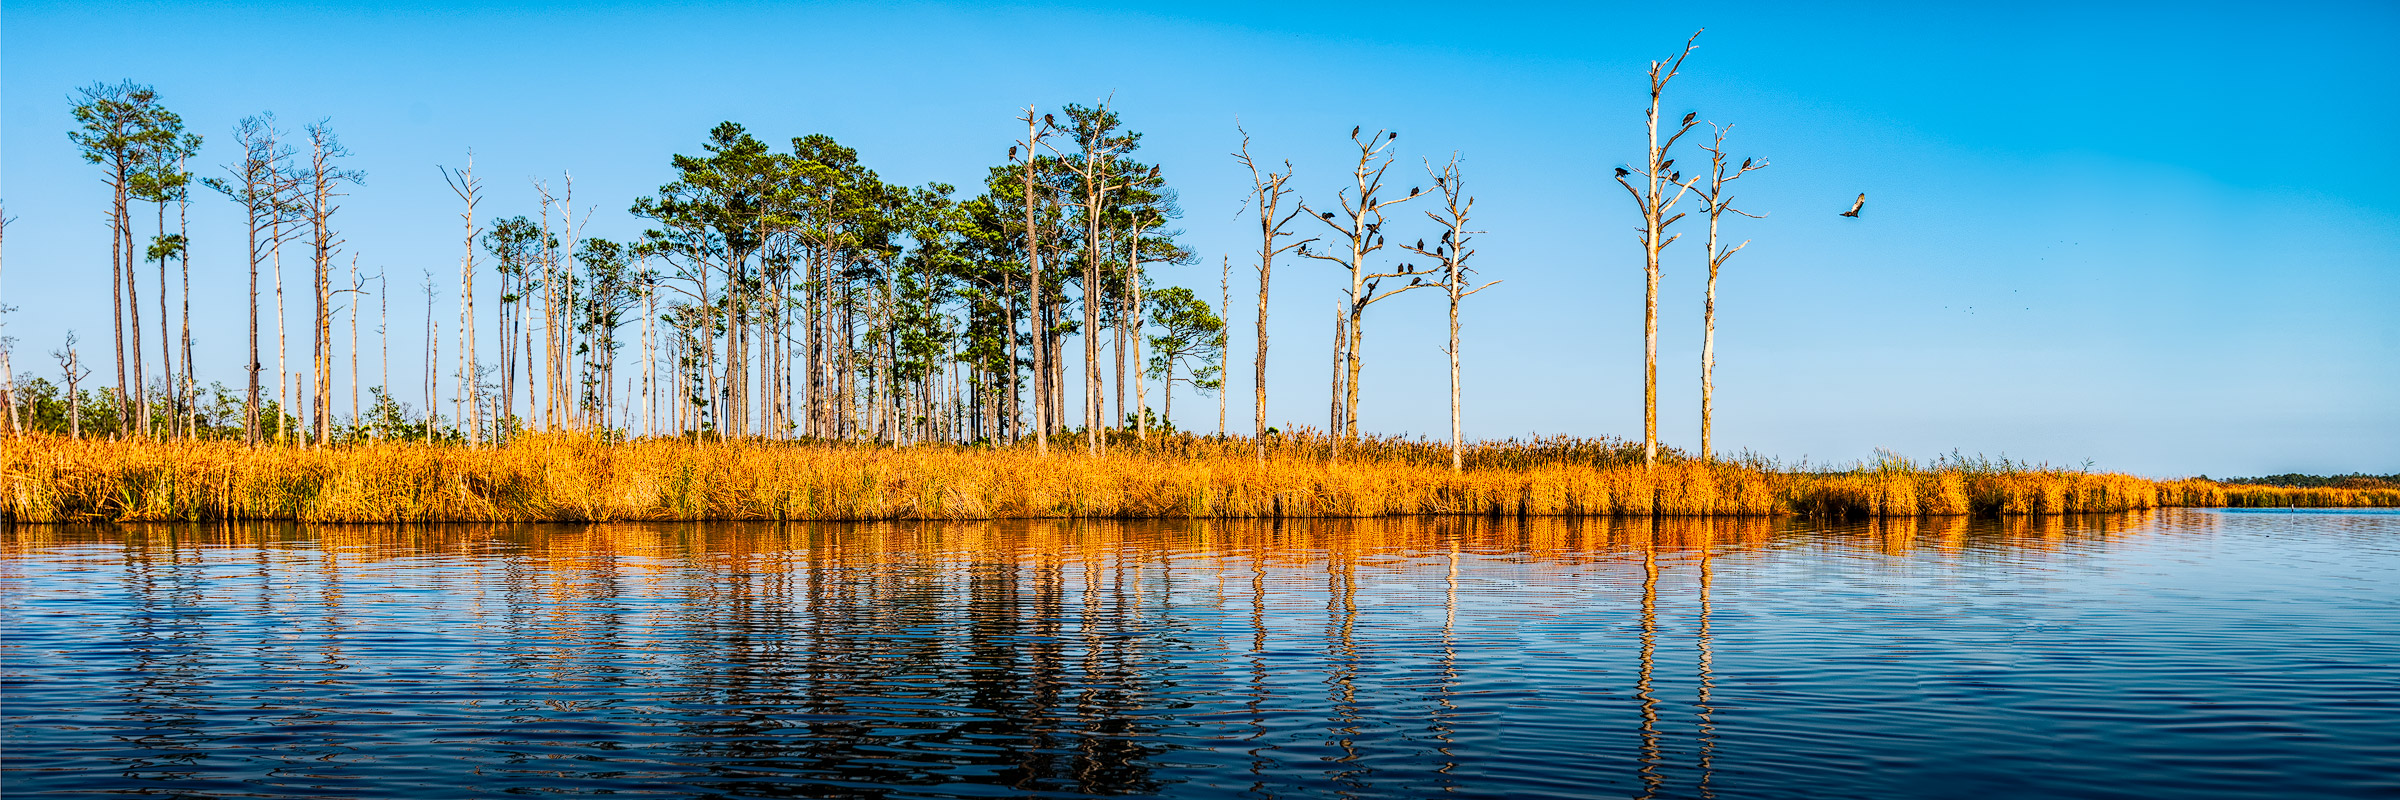 2016-10-16-Blackwater-pano-48-Bird-Trees-2400w.jpg